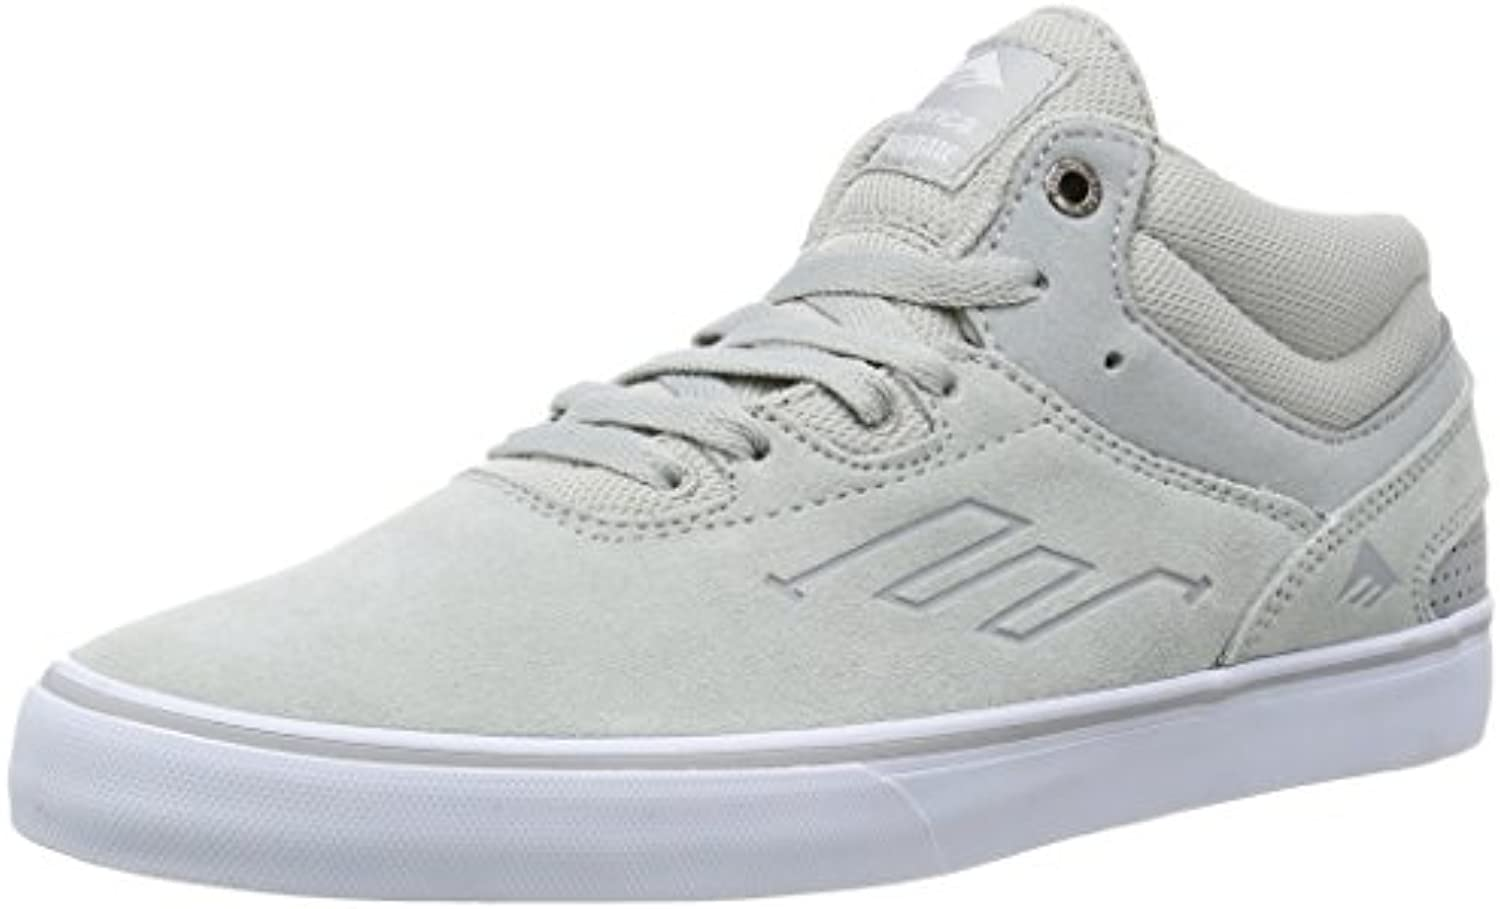 Emerica Skateboard Shoes Westgate Mid Vulc Gray/White Size 12  -